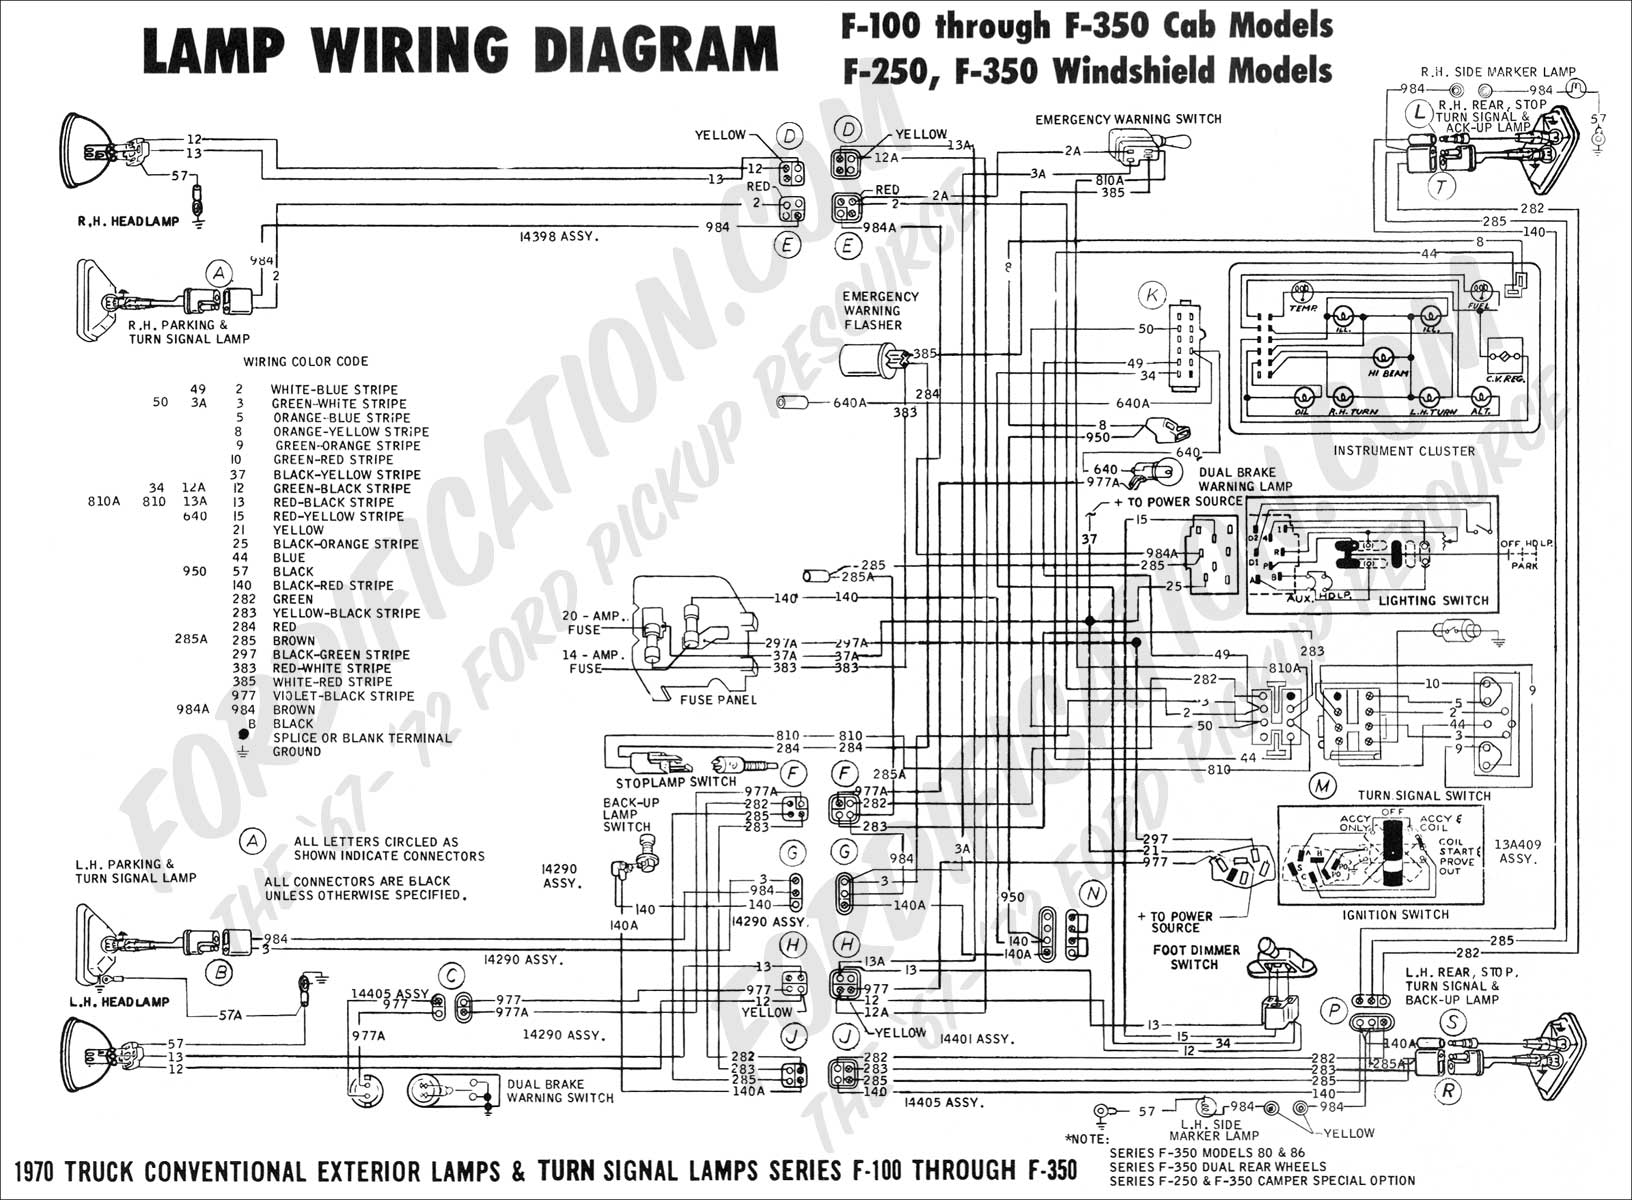 86 ford wiring diagram wiring diagram for 2016 ford f250 wiring diagram for 2016 ford 2016 ford f250 wiring diagram